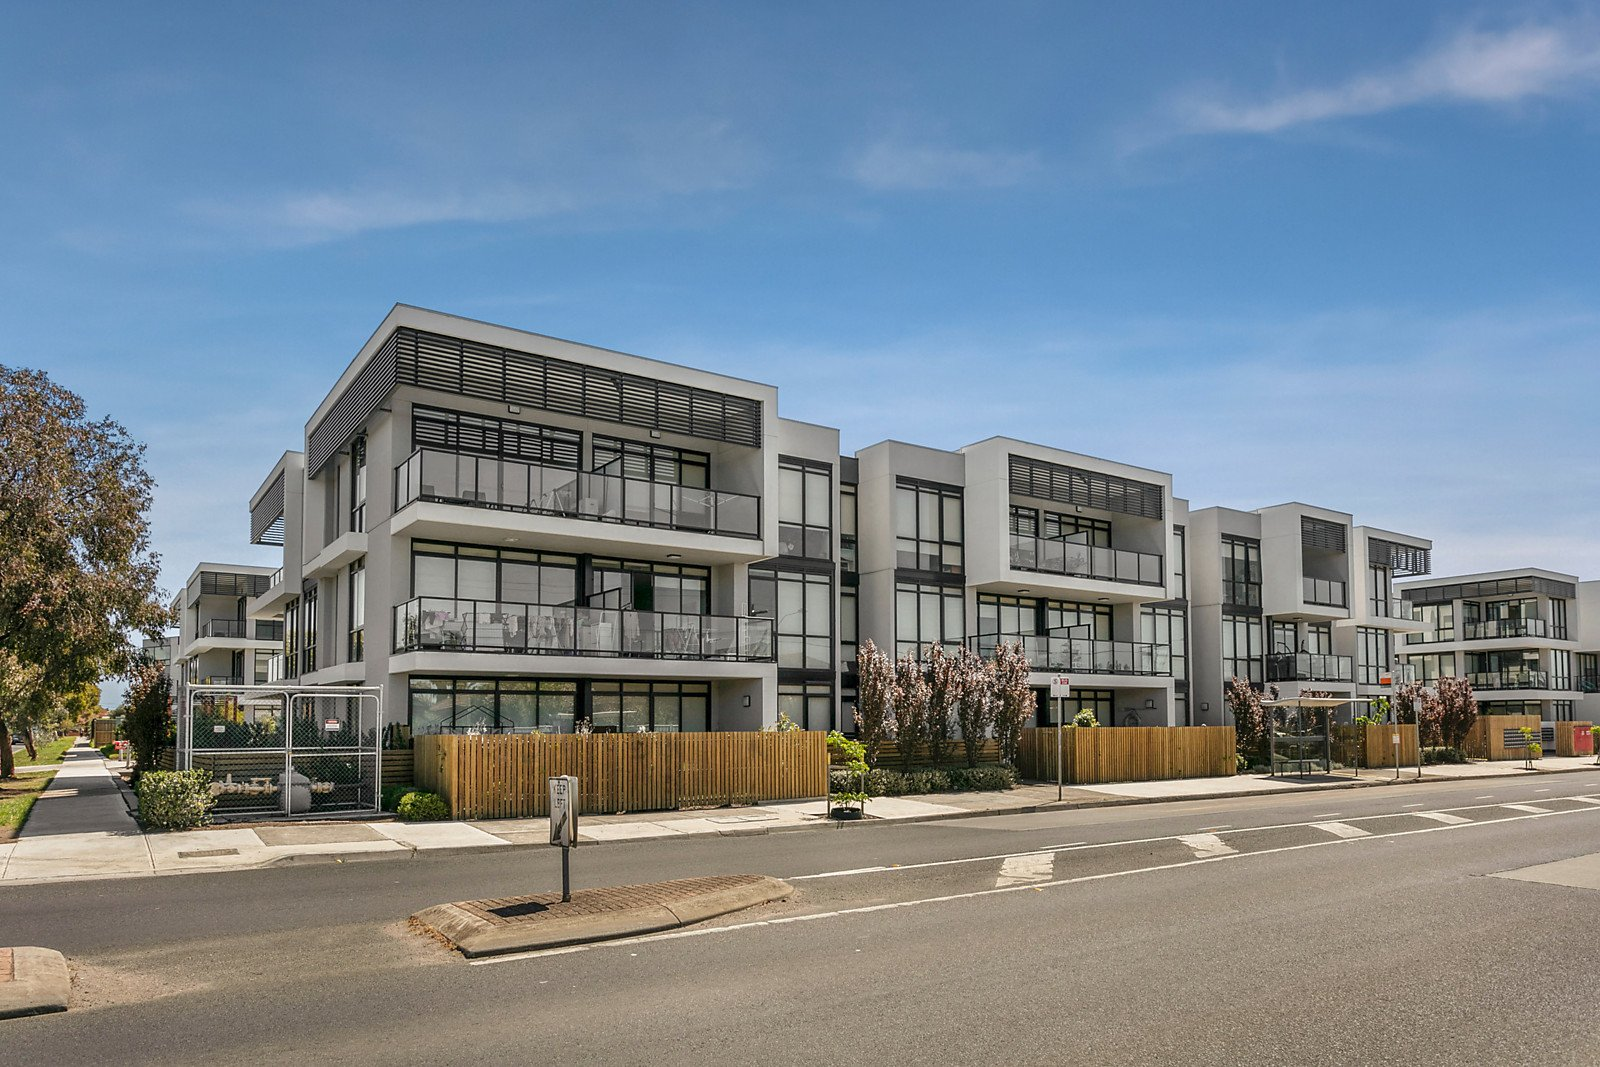 210b/23-25 Cumberland Road, Pascoe Vale South, VIC, 3044 image 10